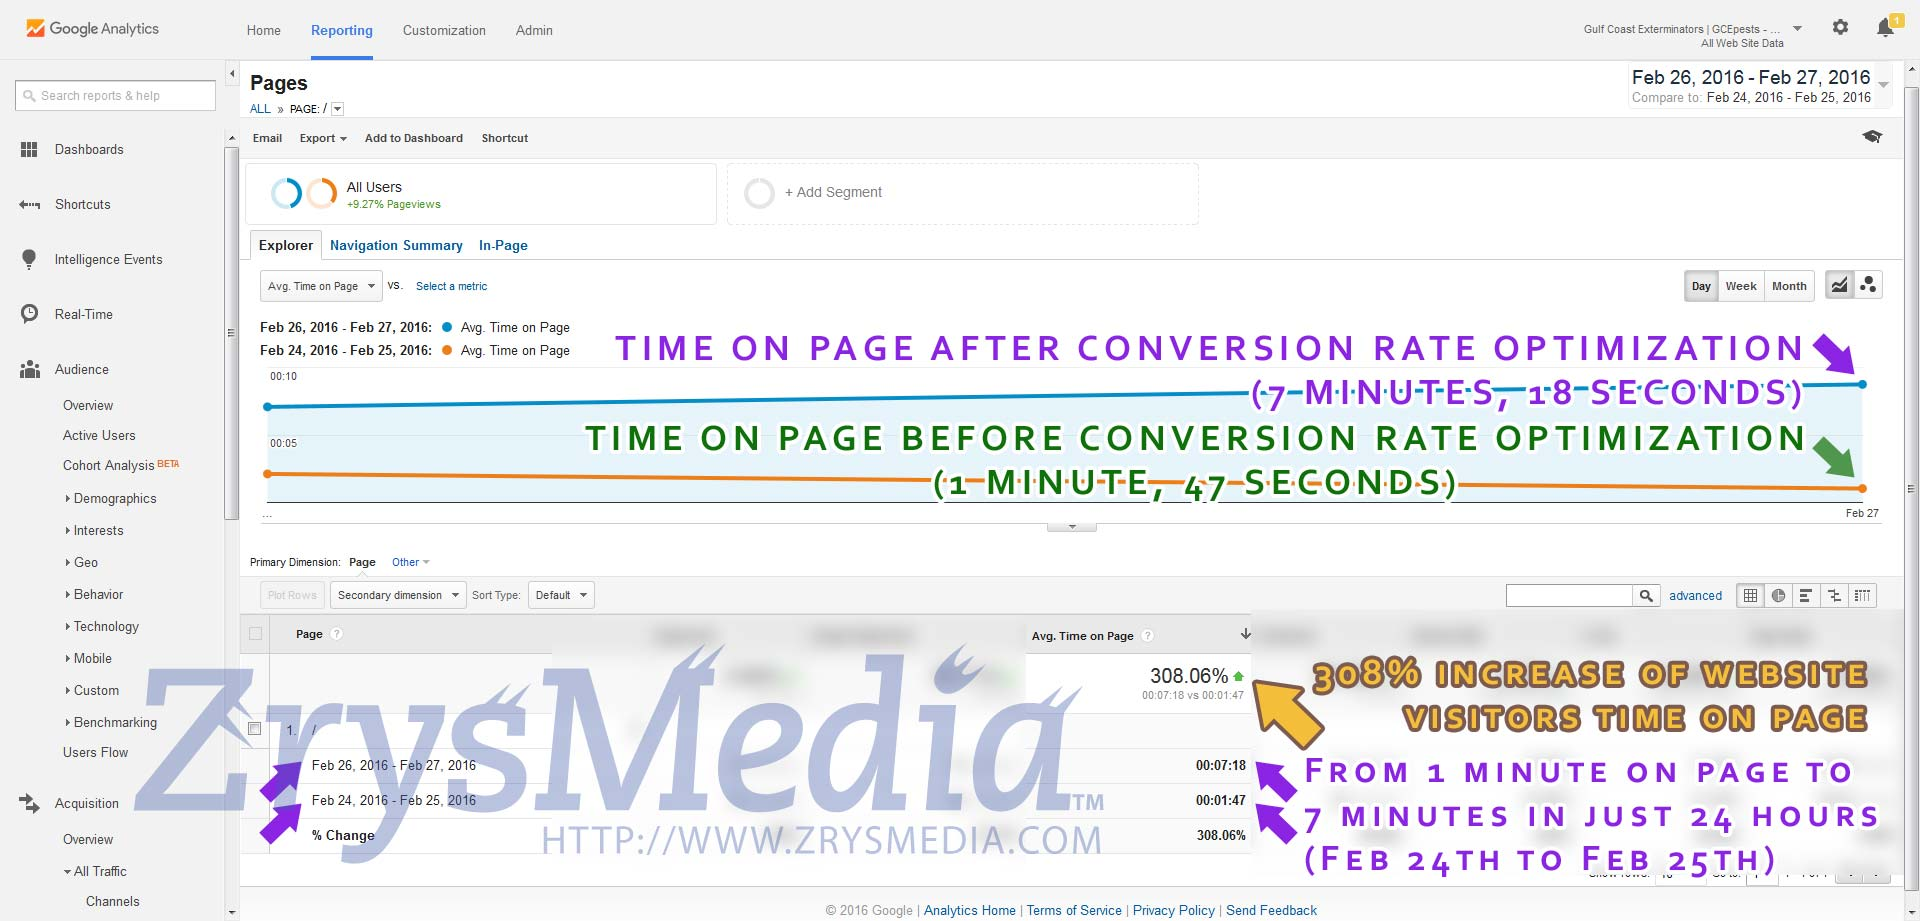 An example of Conversion Rate Optimization ZrysMedia performed for Gulf Cost Exterminators which increased on-page time.